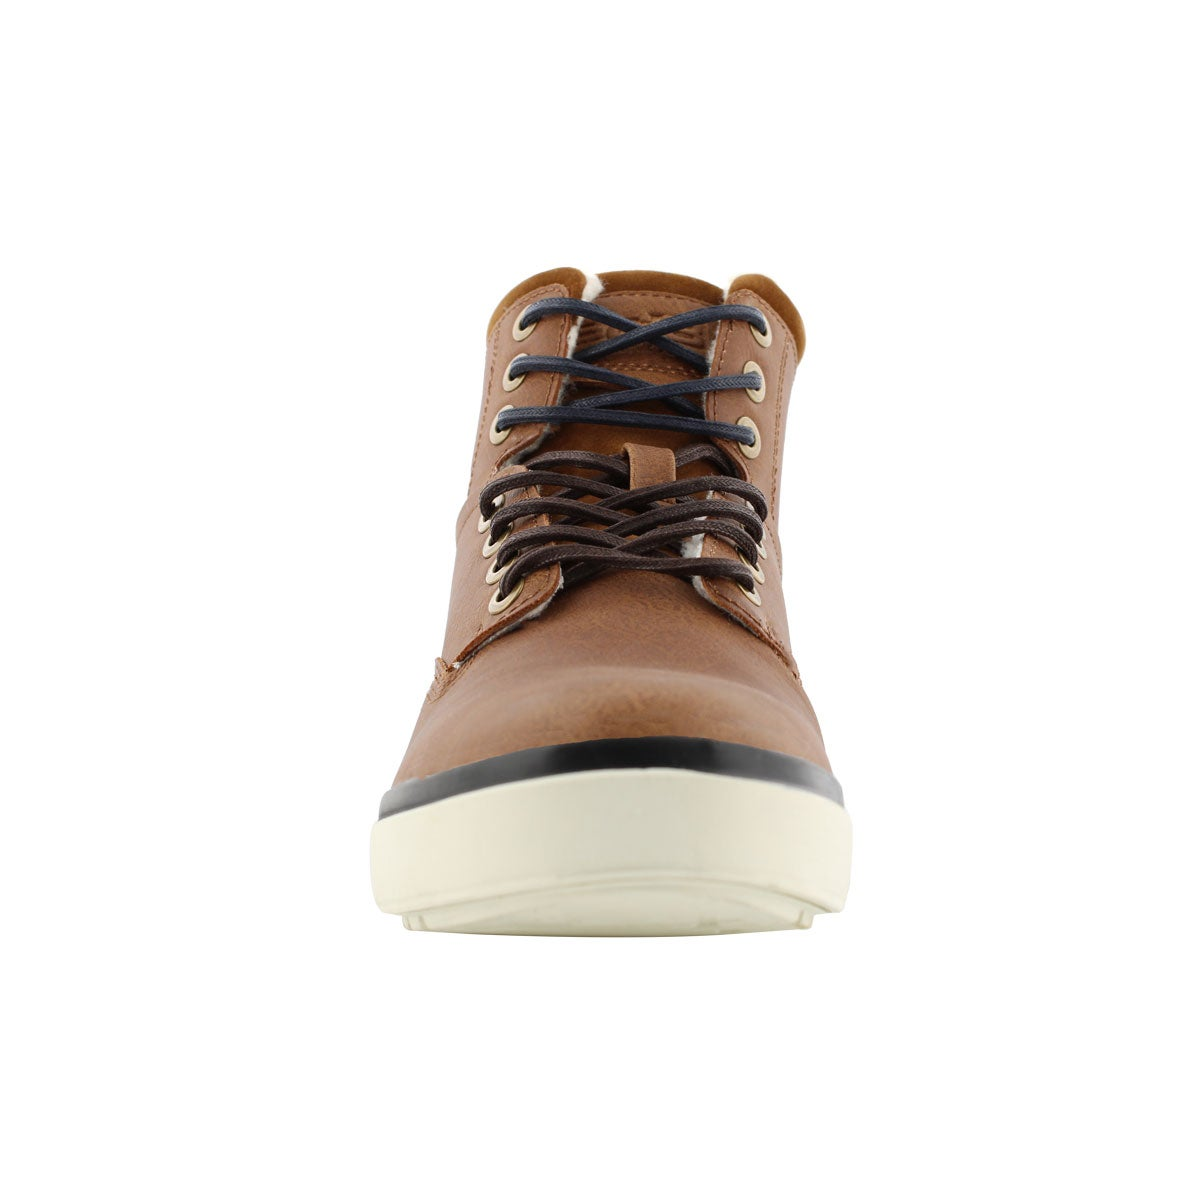 Mns Roadster cognac lace up ankle boot